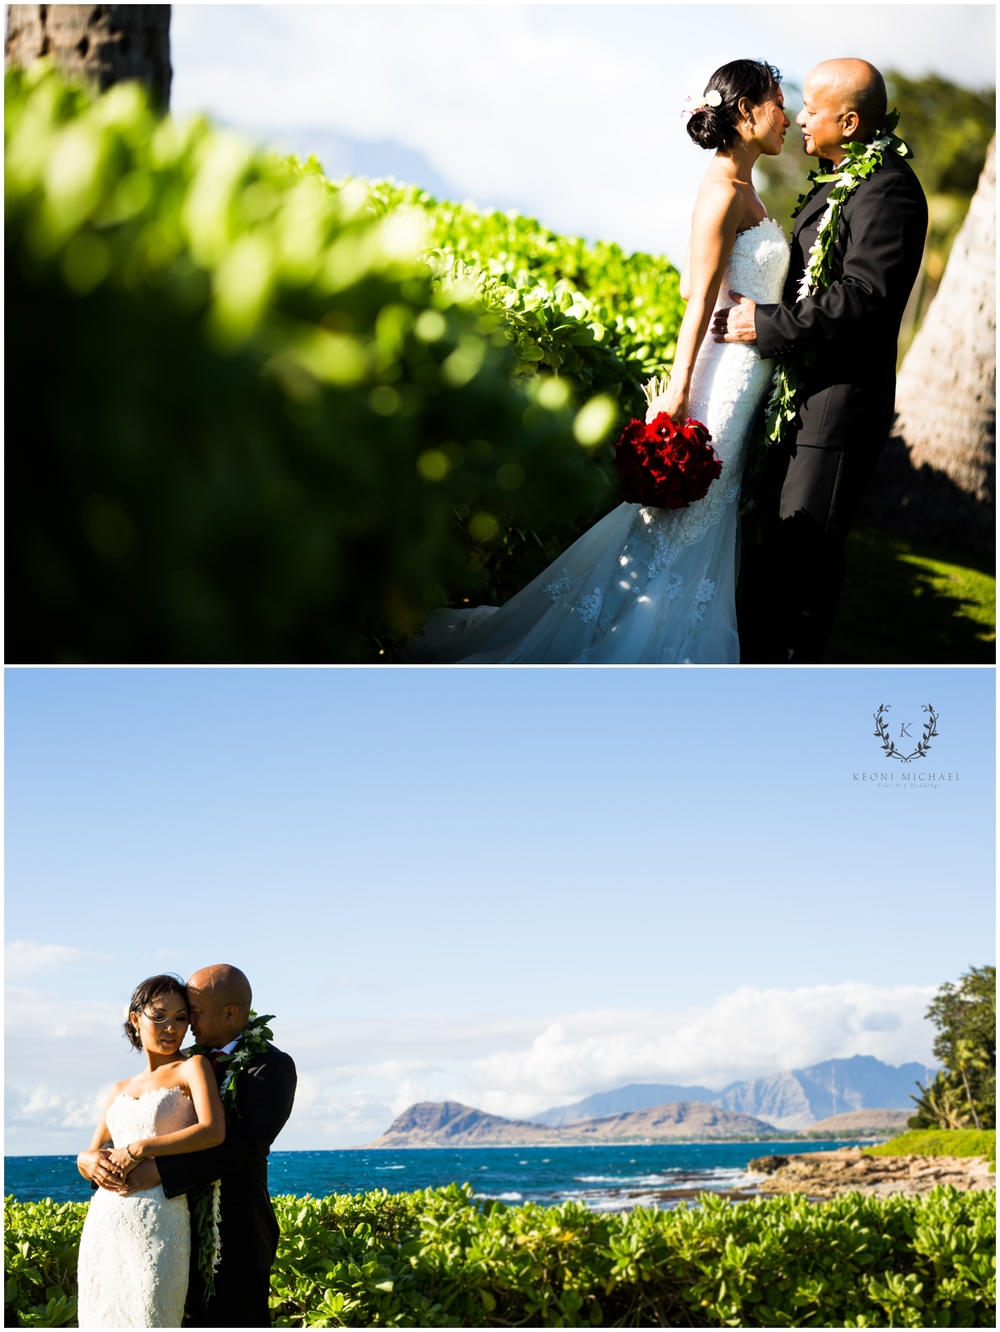 oahu-wedding-photographers.jpg